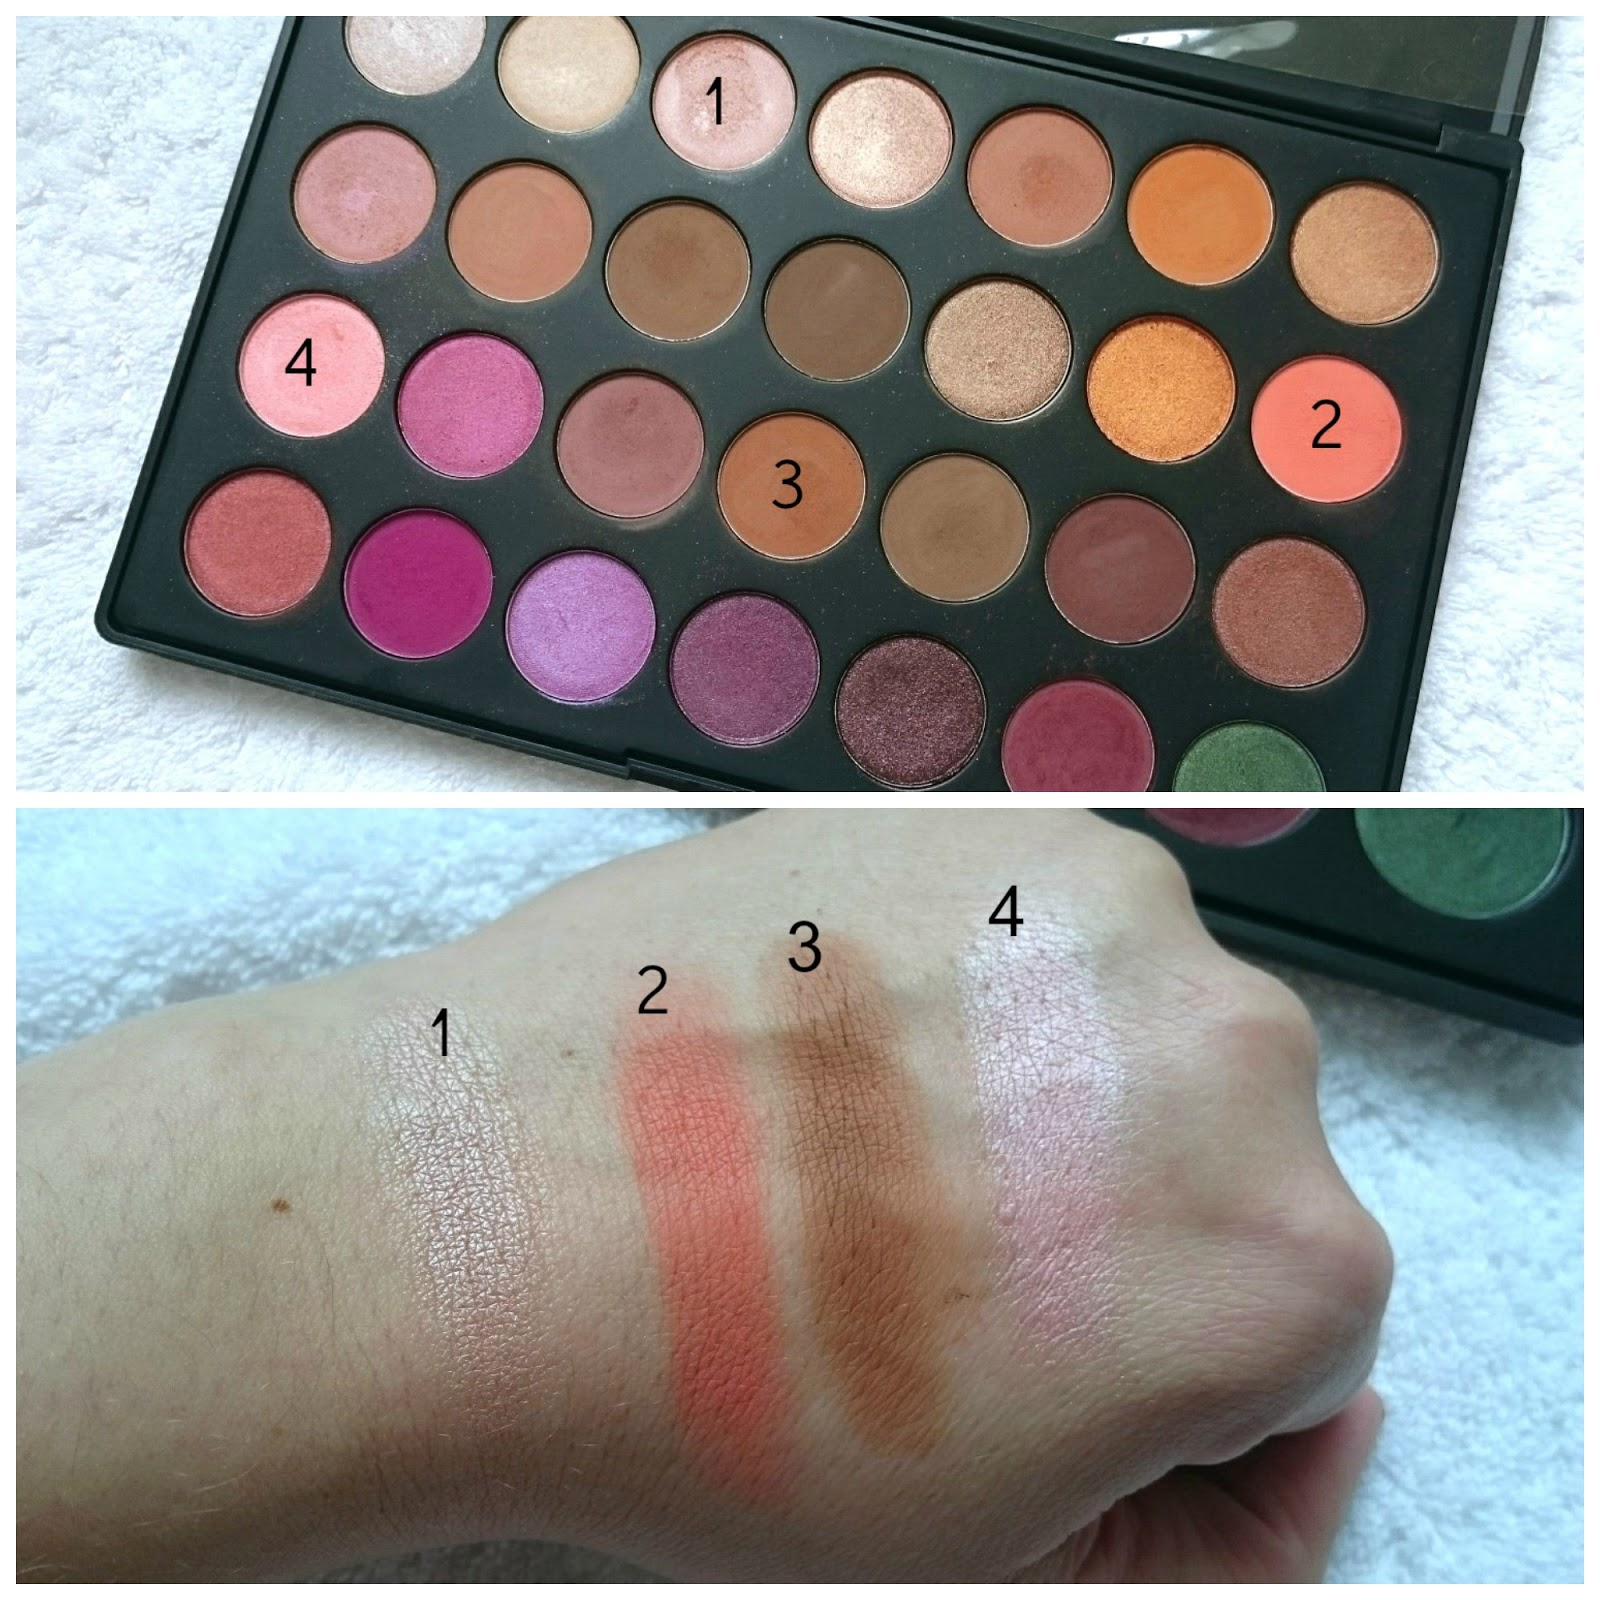 Jaclyn HIll favourites palette